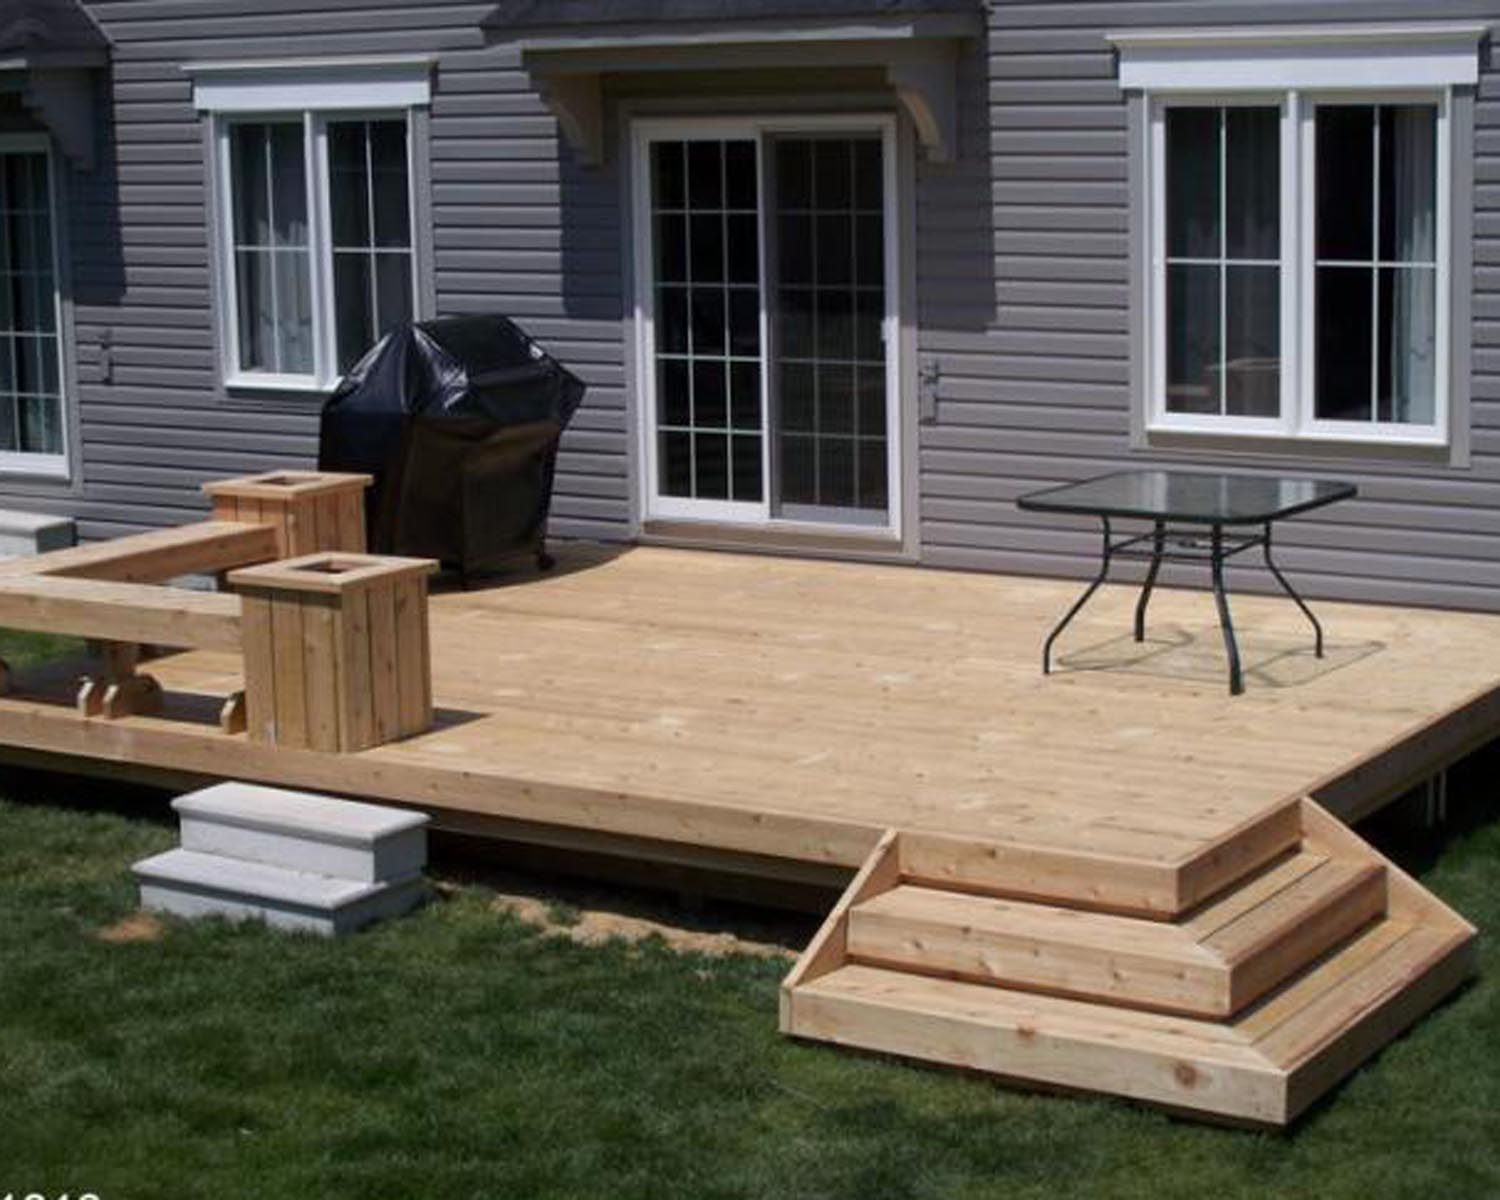 Deck Design Ideas 32 wonderful deck designs to make your home extremely awesome Deck Ideas Be More When Deck Building Simple But Functional Designs Can